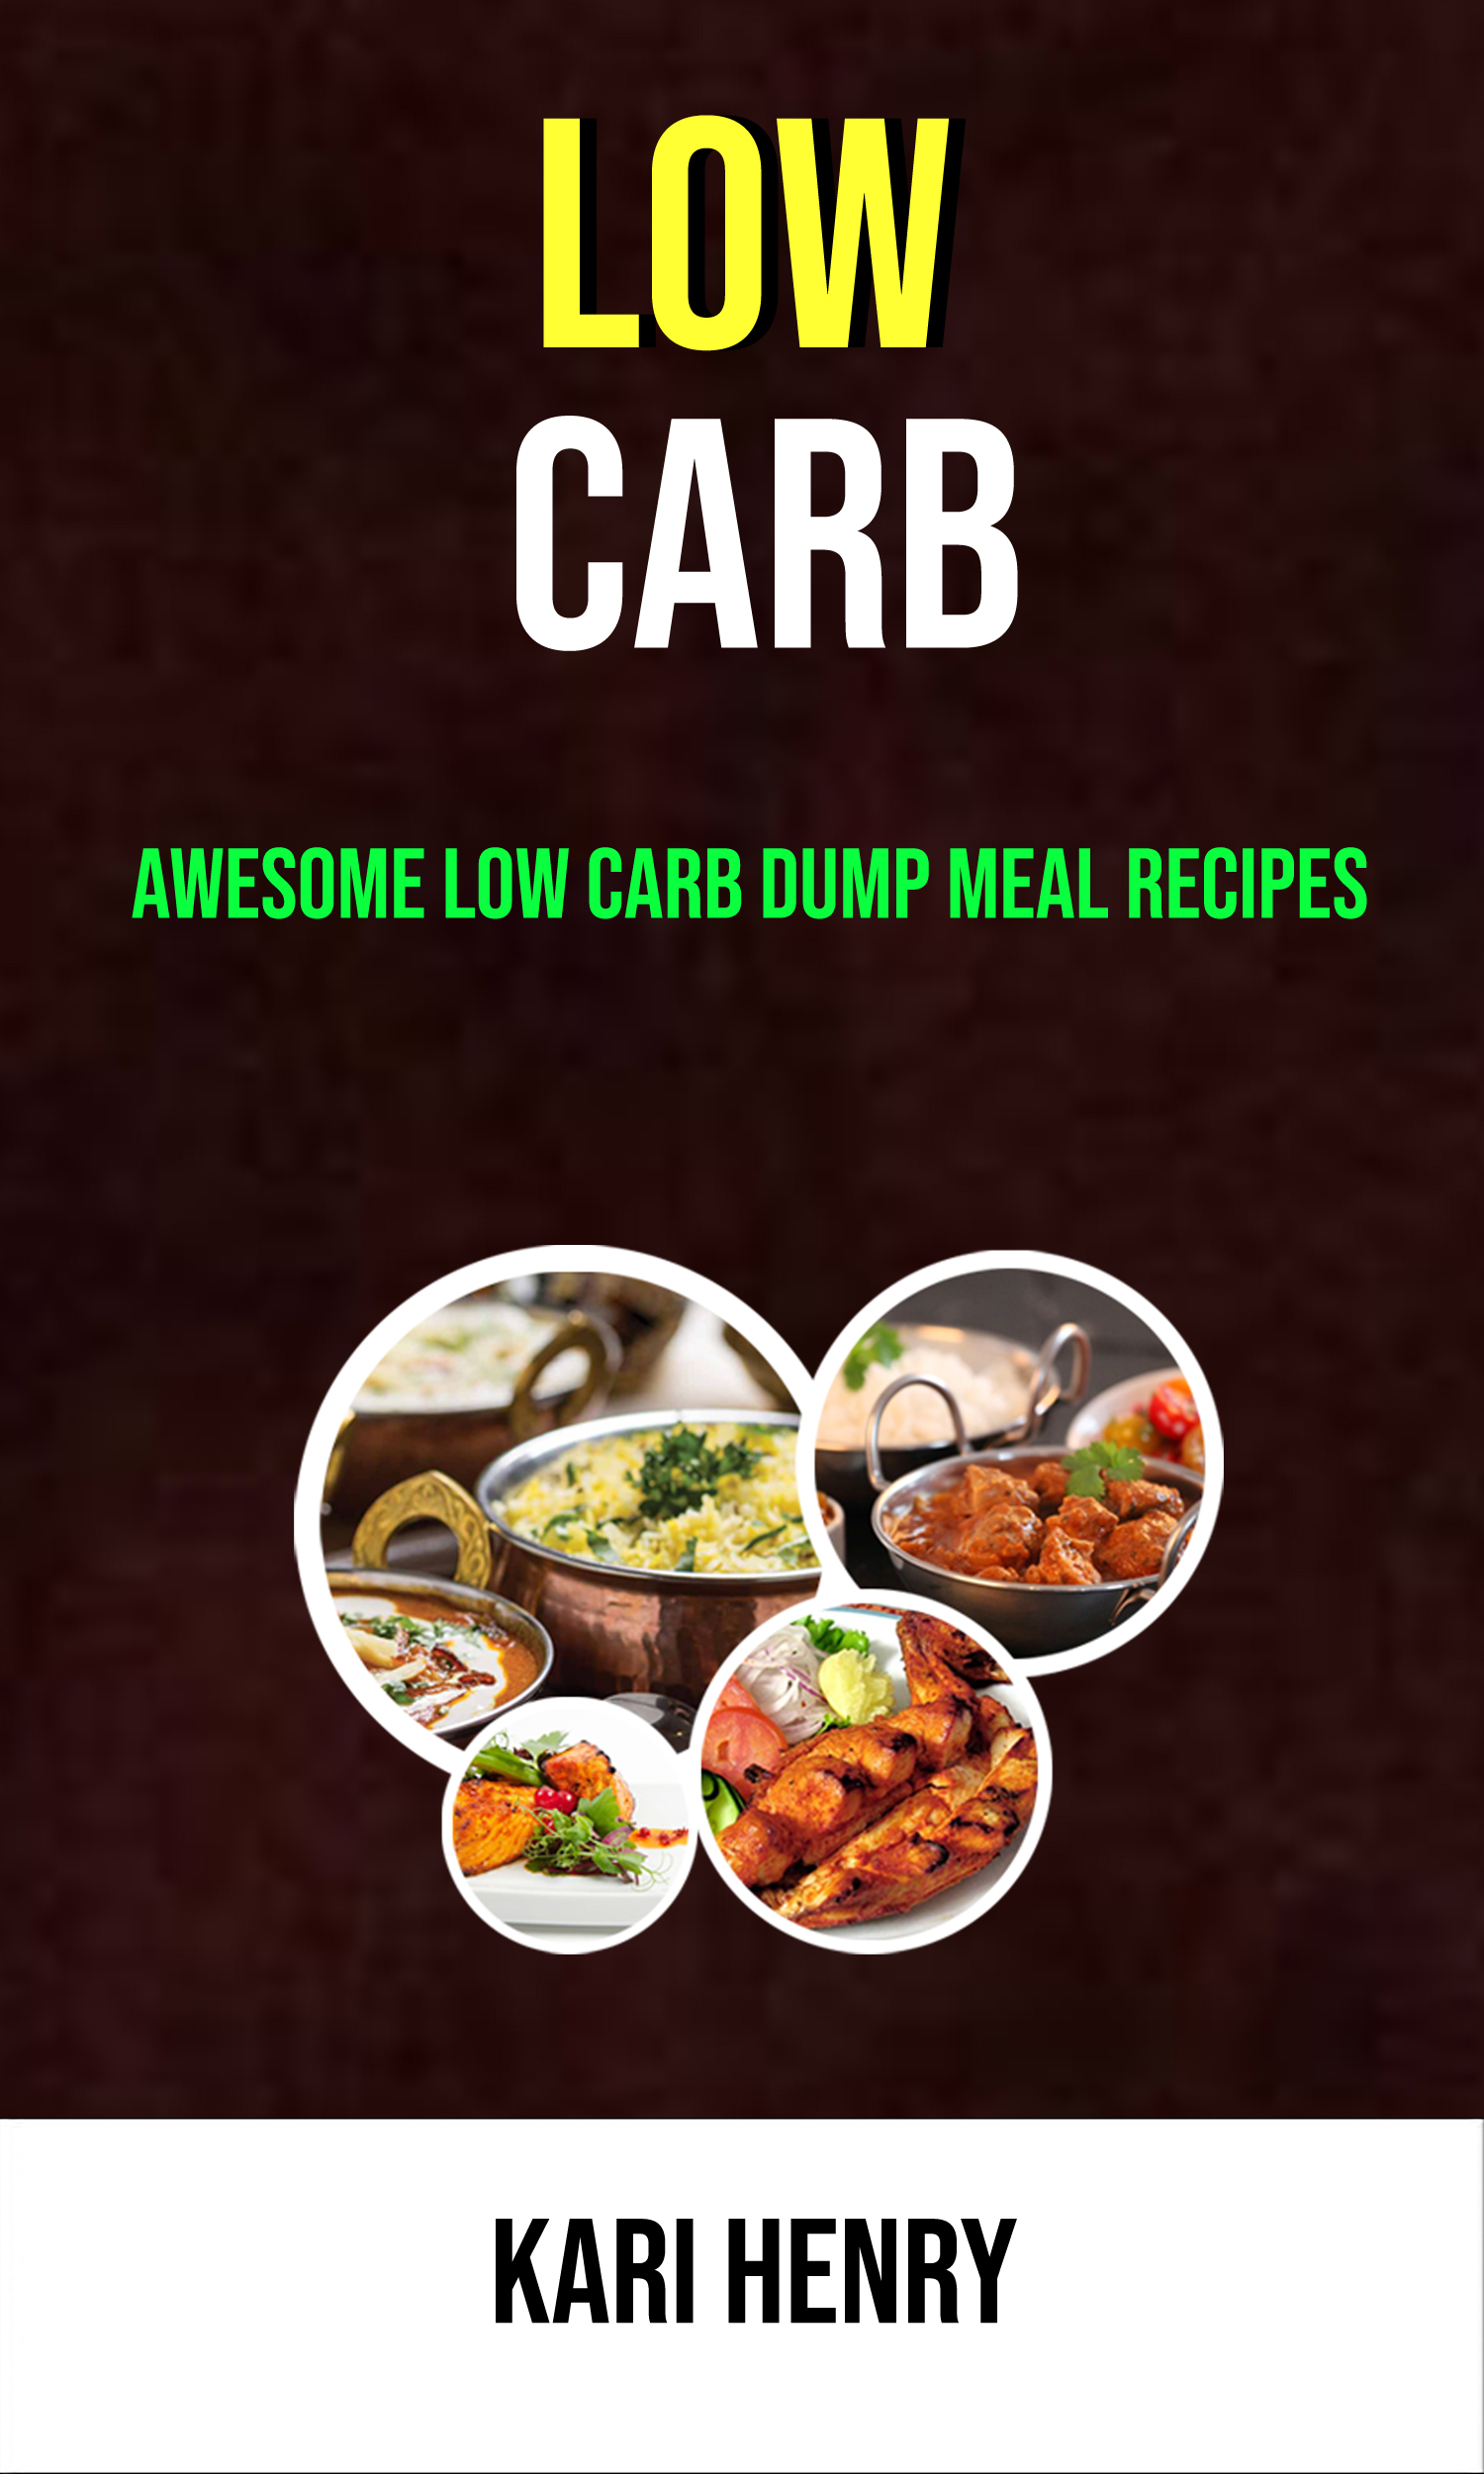 Low carb: awesome low carb dump meal recipes